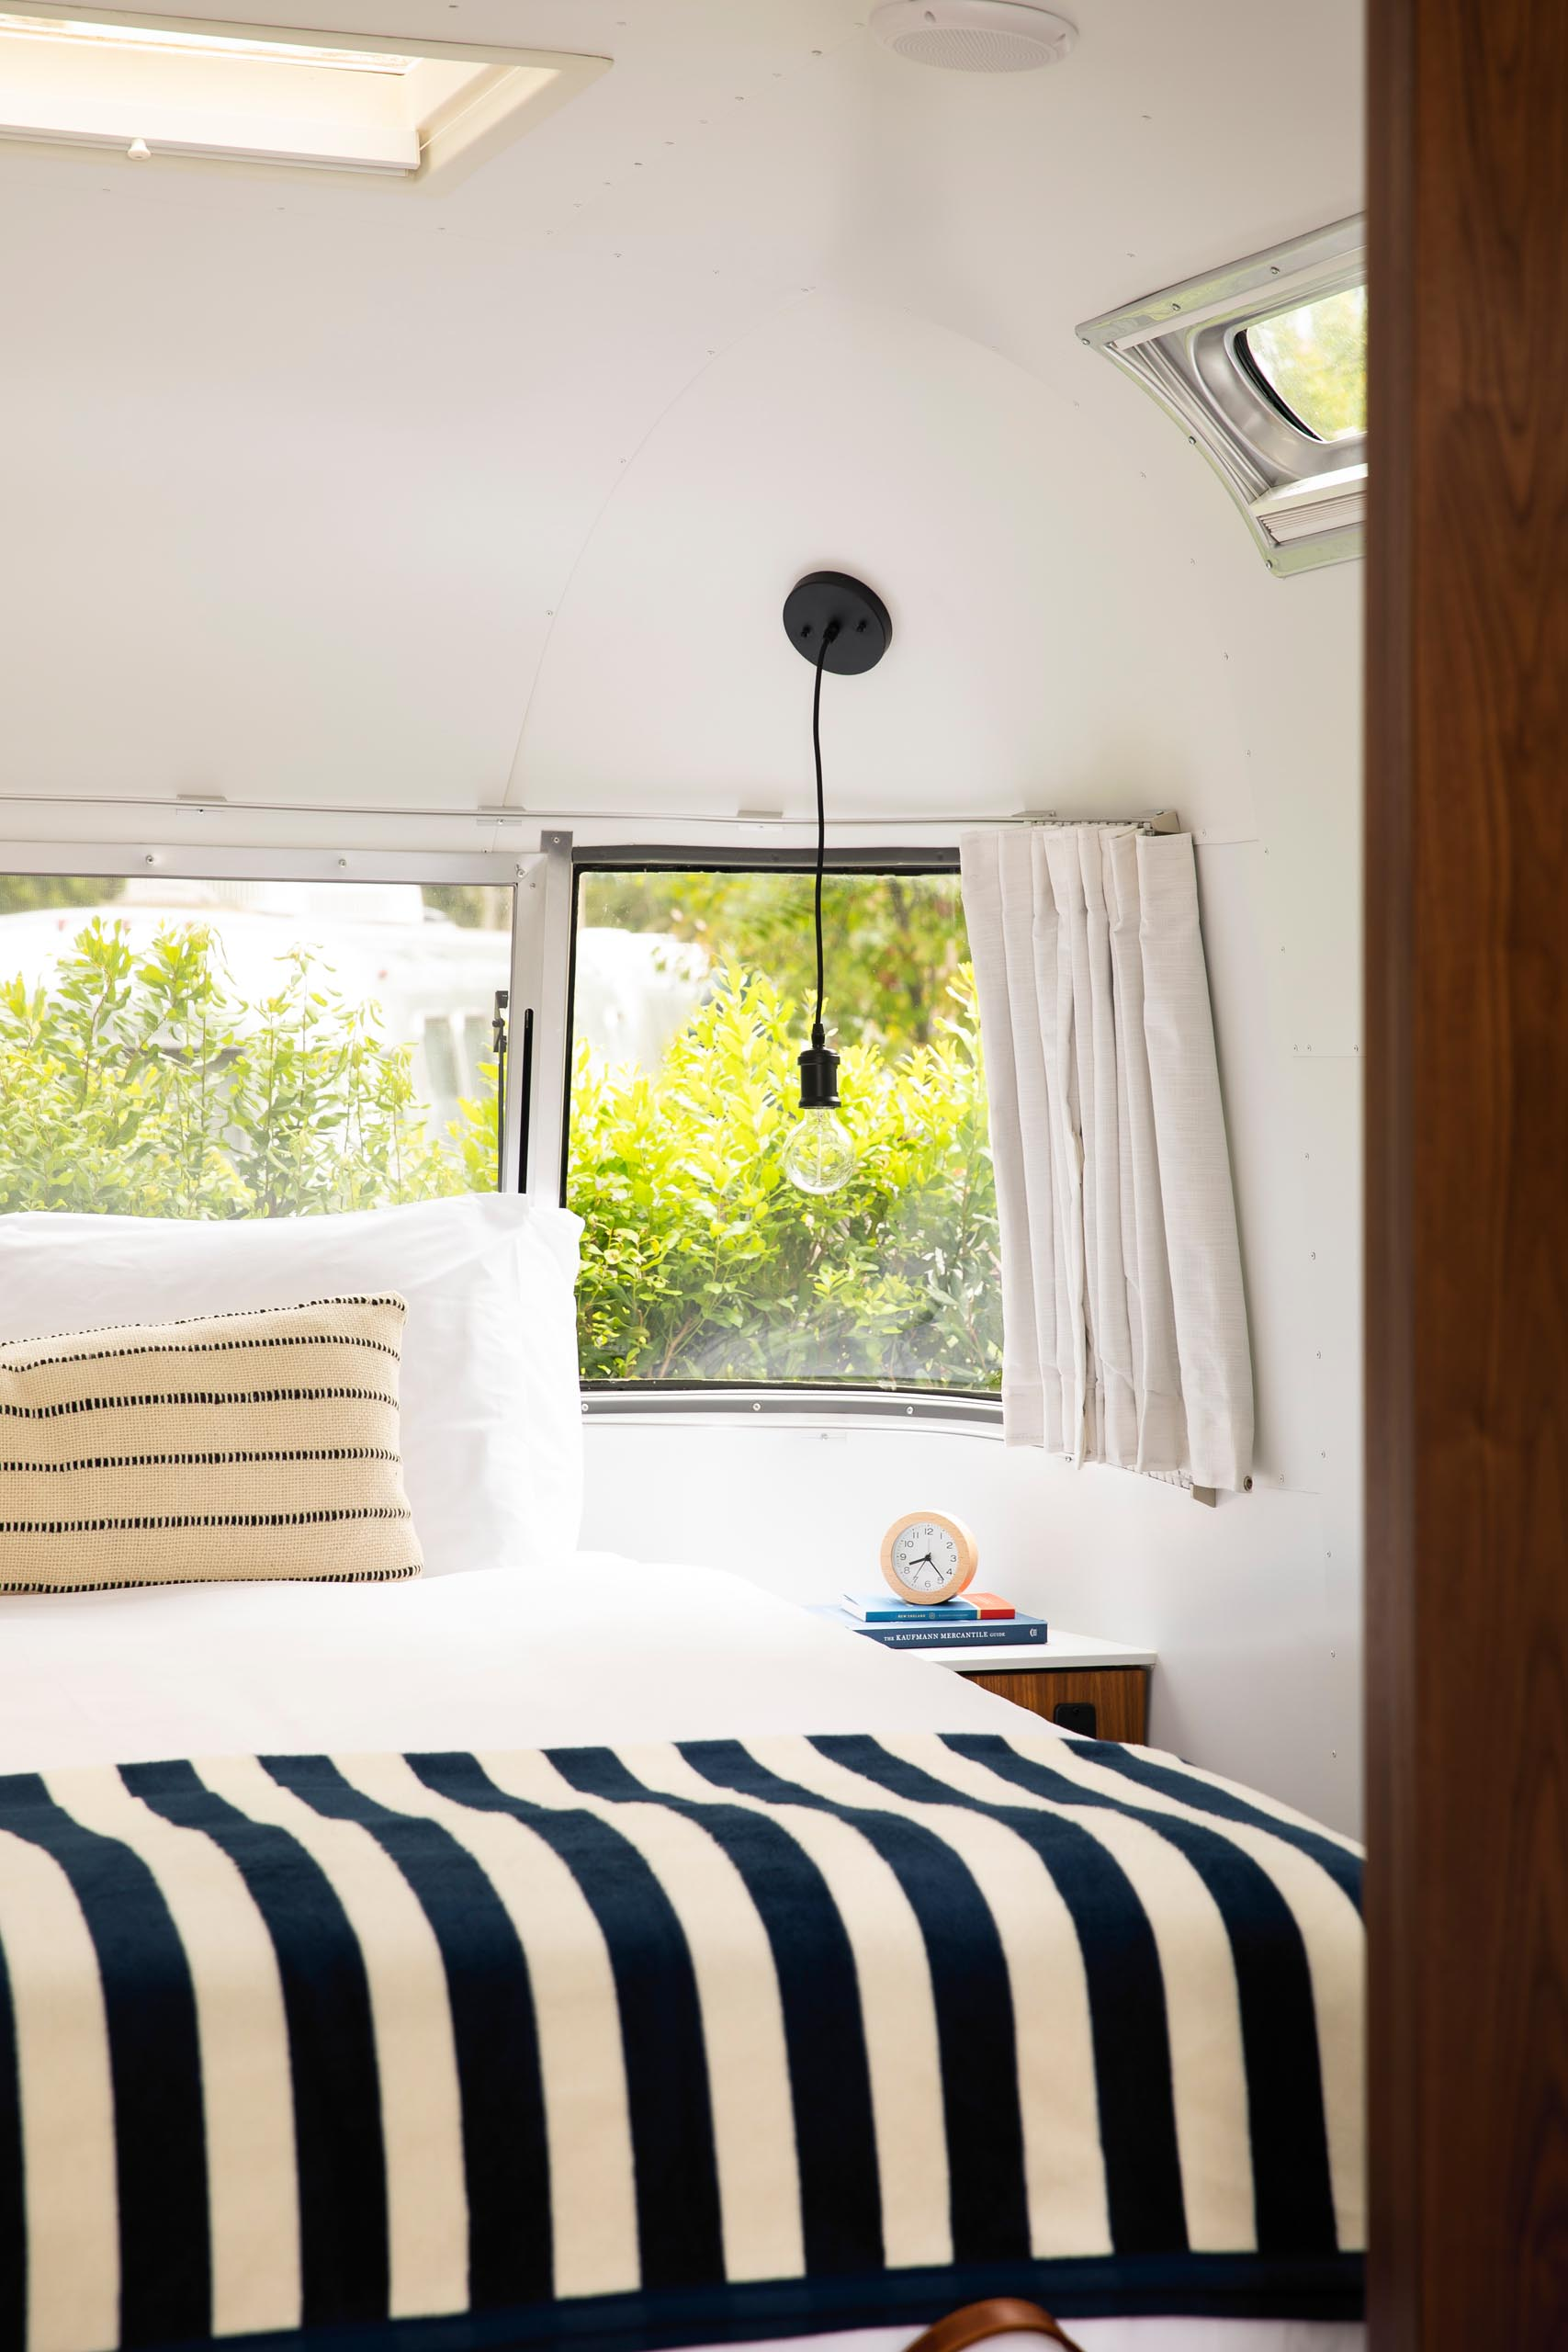 A remodeled Airstream bedroom is furnished with a queen bed, built-in side tables, and a pair of simple pendant lights. A panoramic window fills the small space with natural light and views of the gardens, while at night the curtains can be closed for a more cozy and private atmosphere.